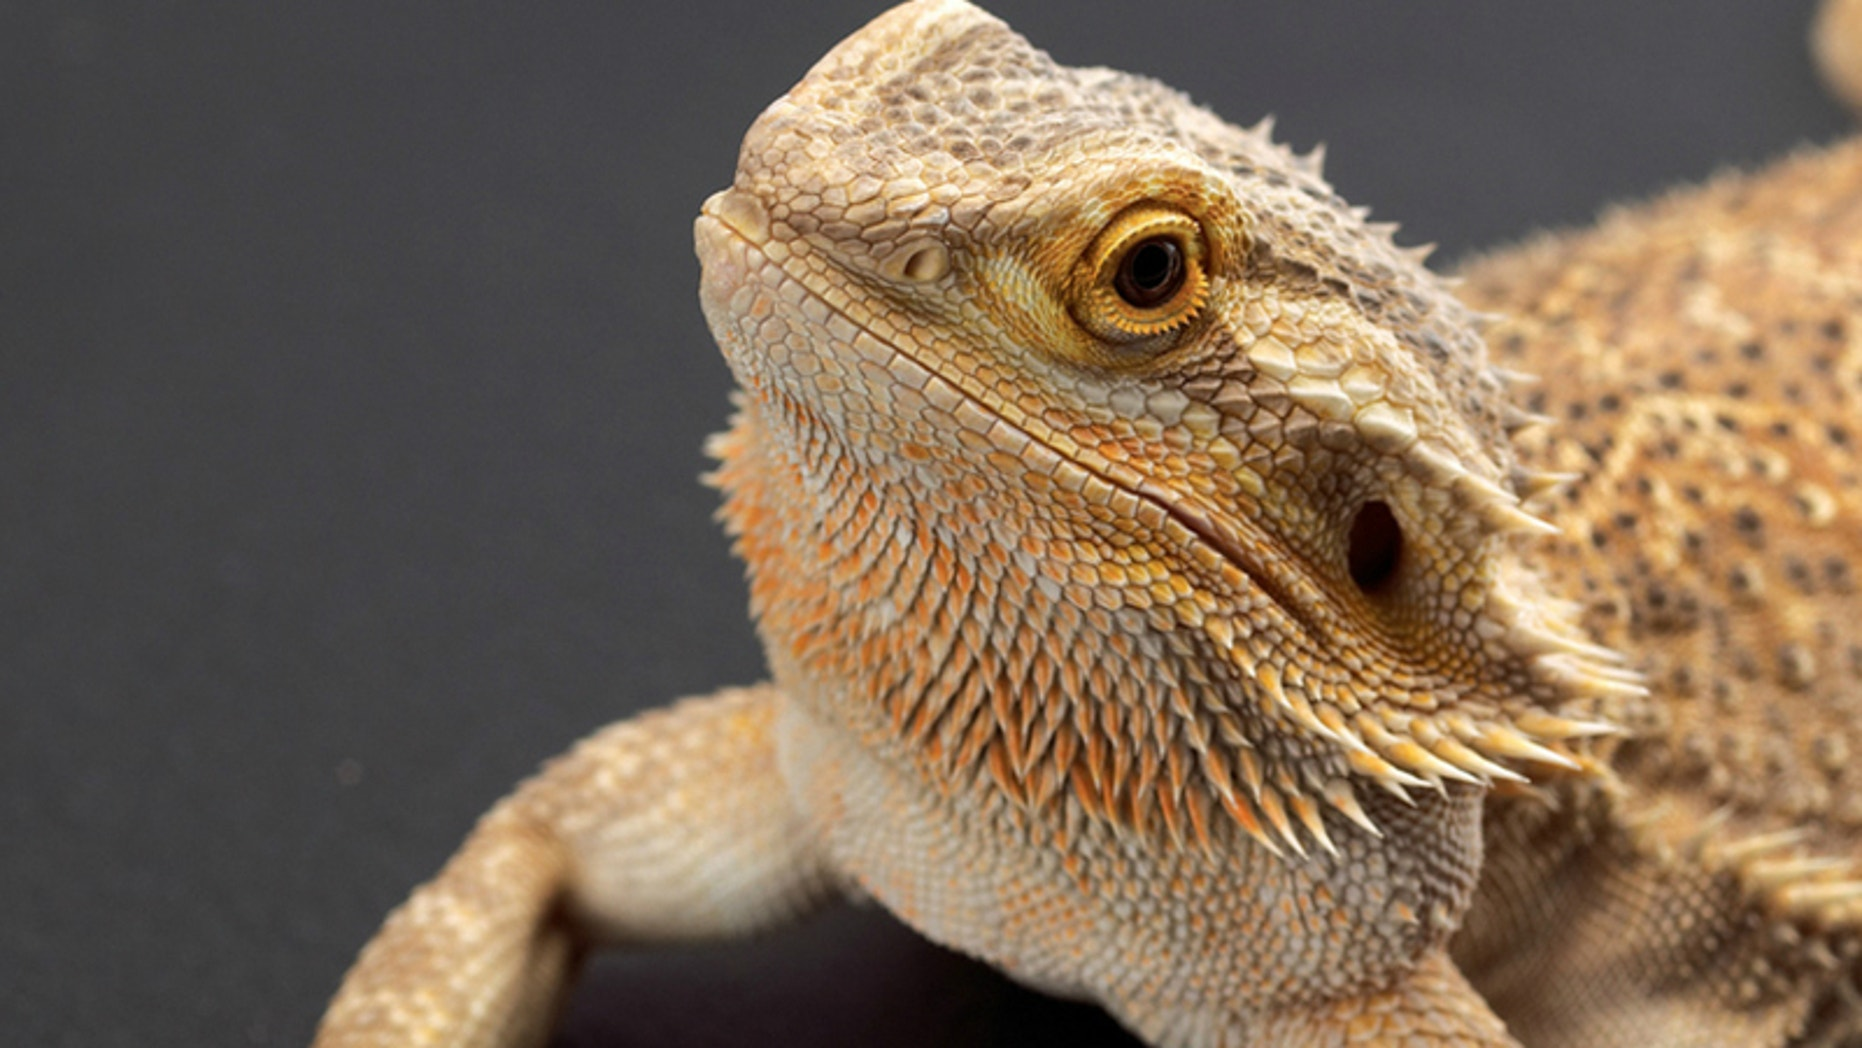 Your Typical Bearded Dragon Displaying A Laid Back Demeanor